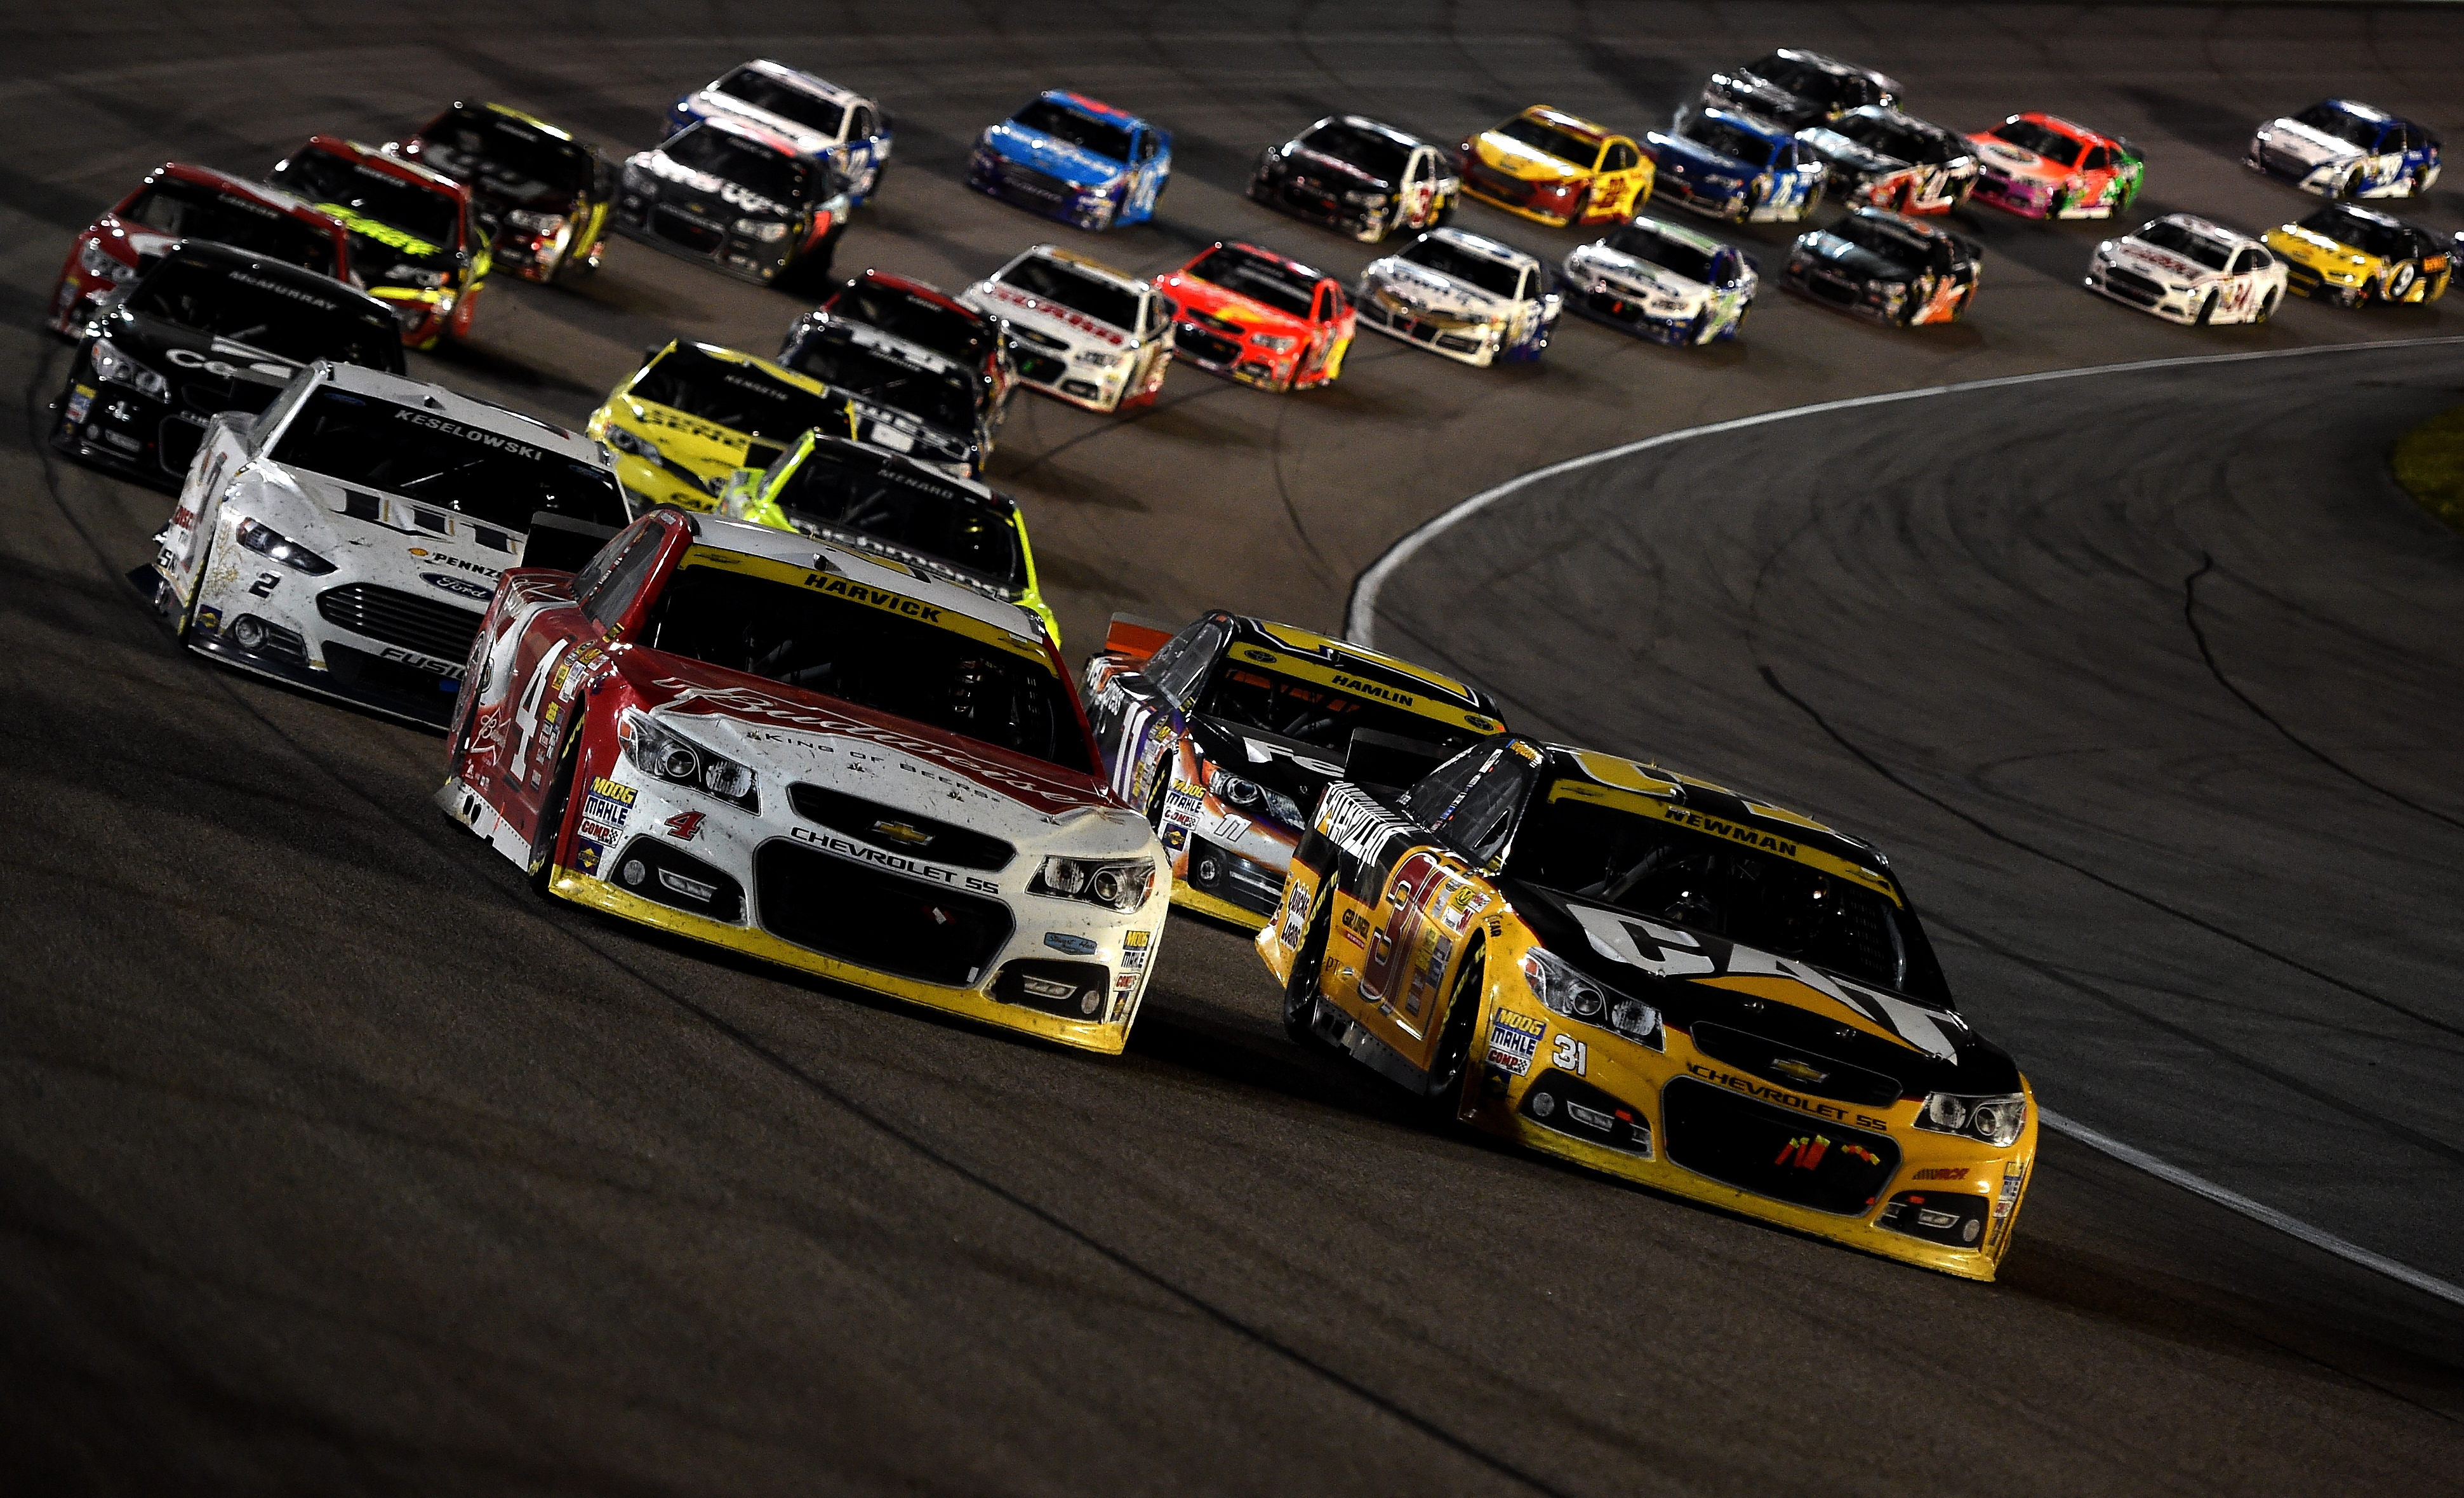 Nascar - Nascar Enters New Season After Shifting Gears To Bump Viewership Kuow News And Information